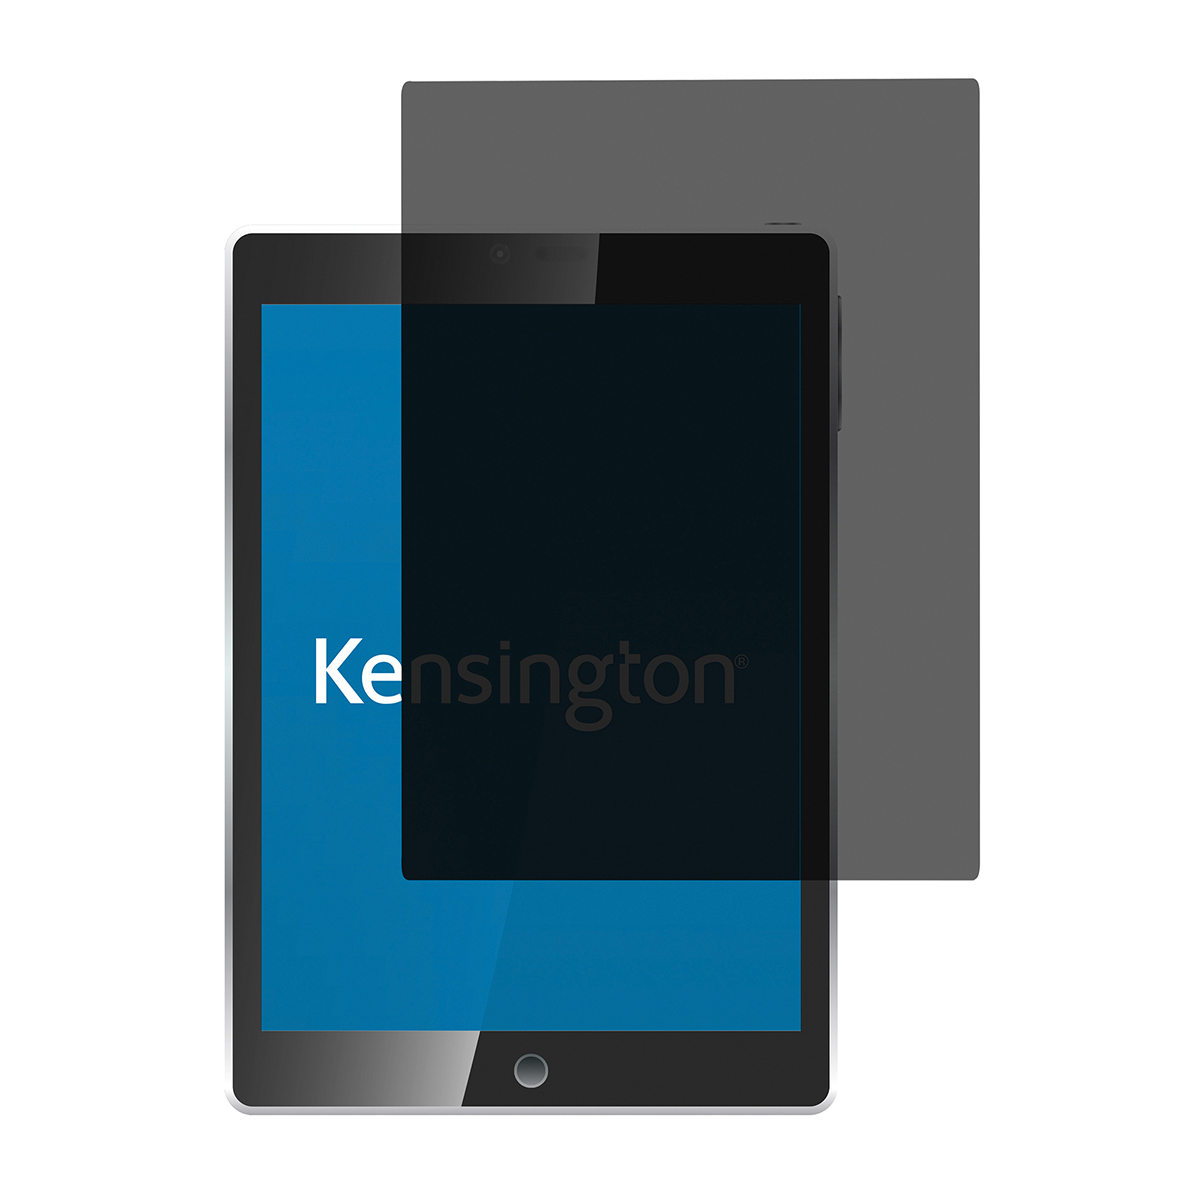 Kensington 626397 Privacy Filter 2 Way Adhesive for iPad Pro 10.5 Inch